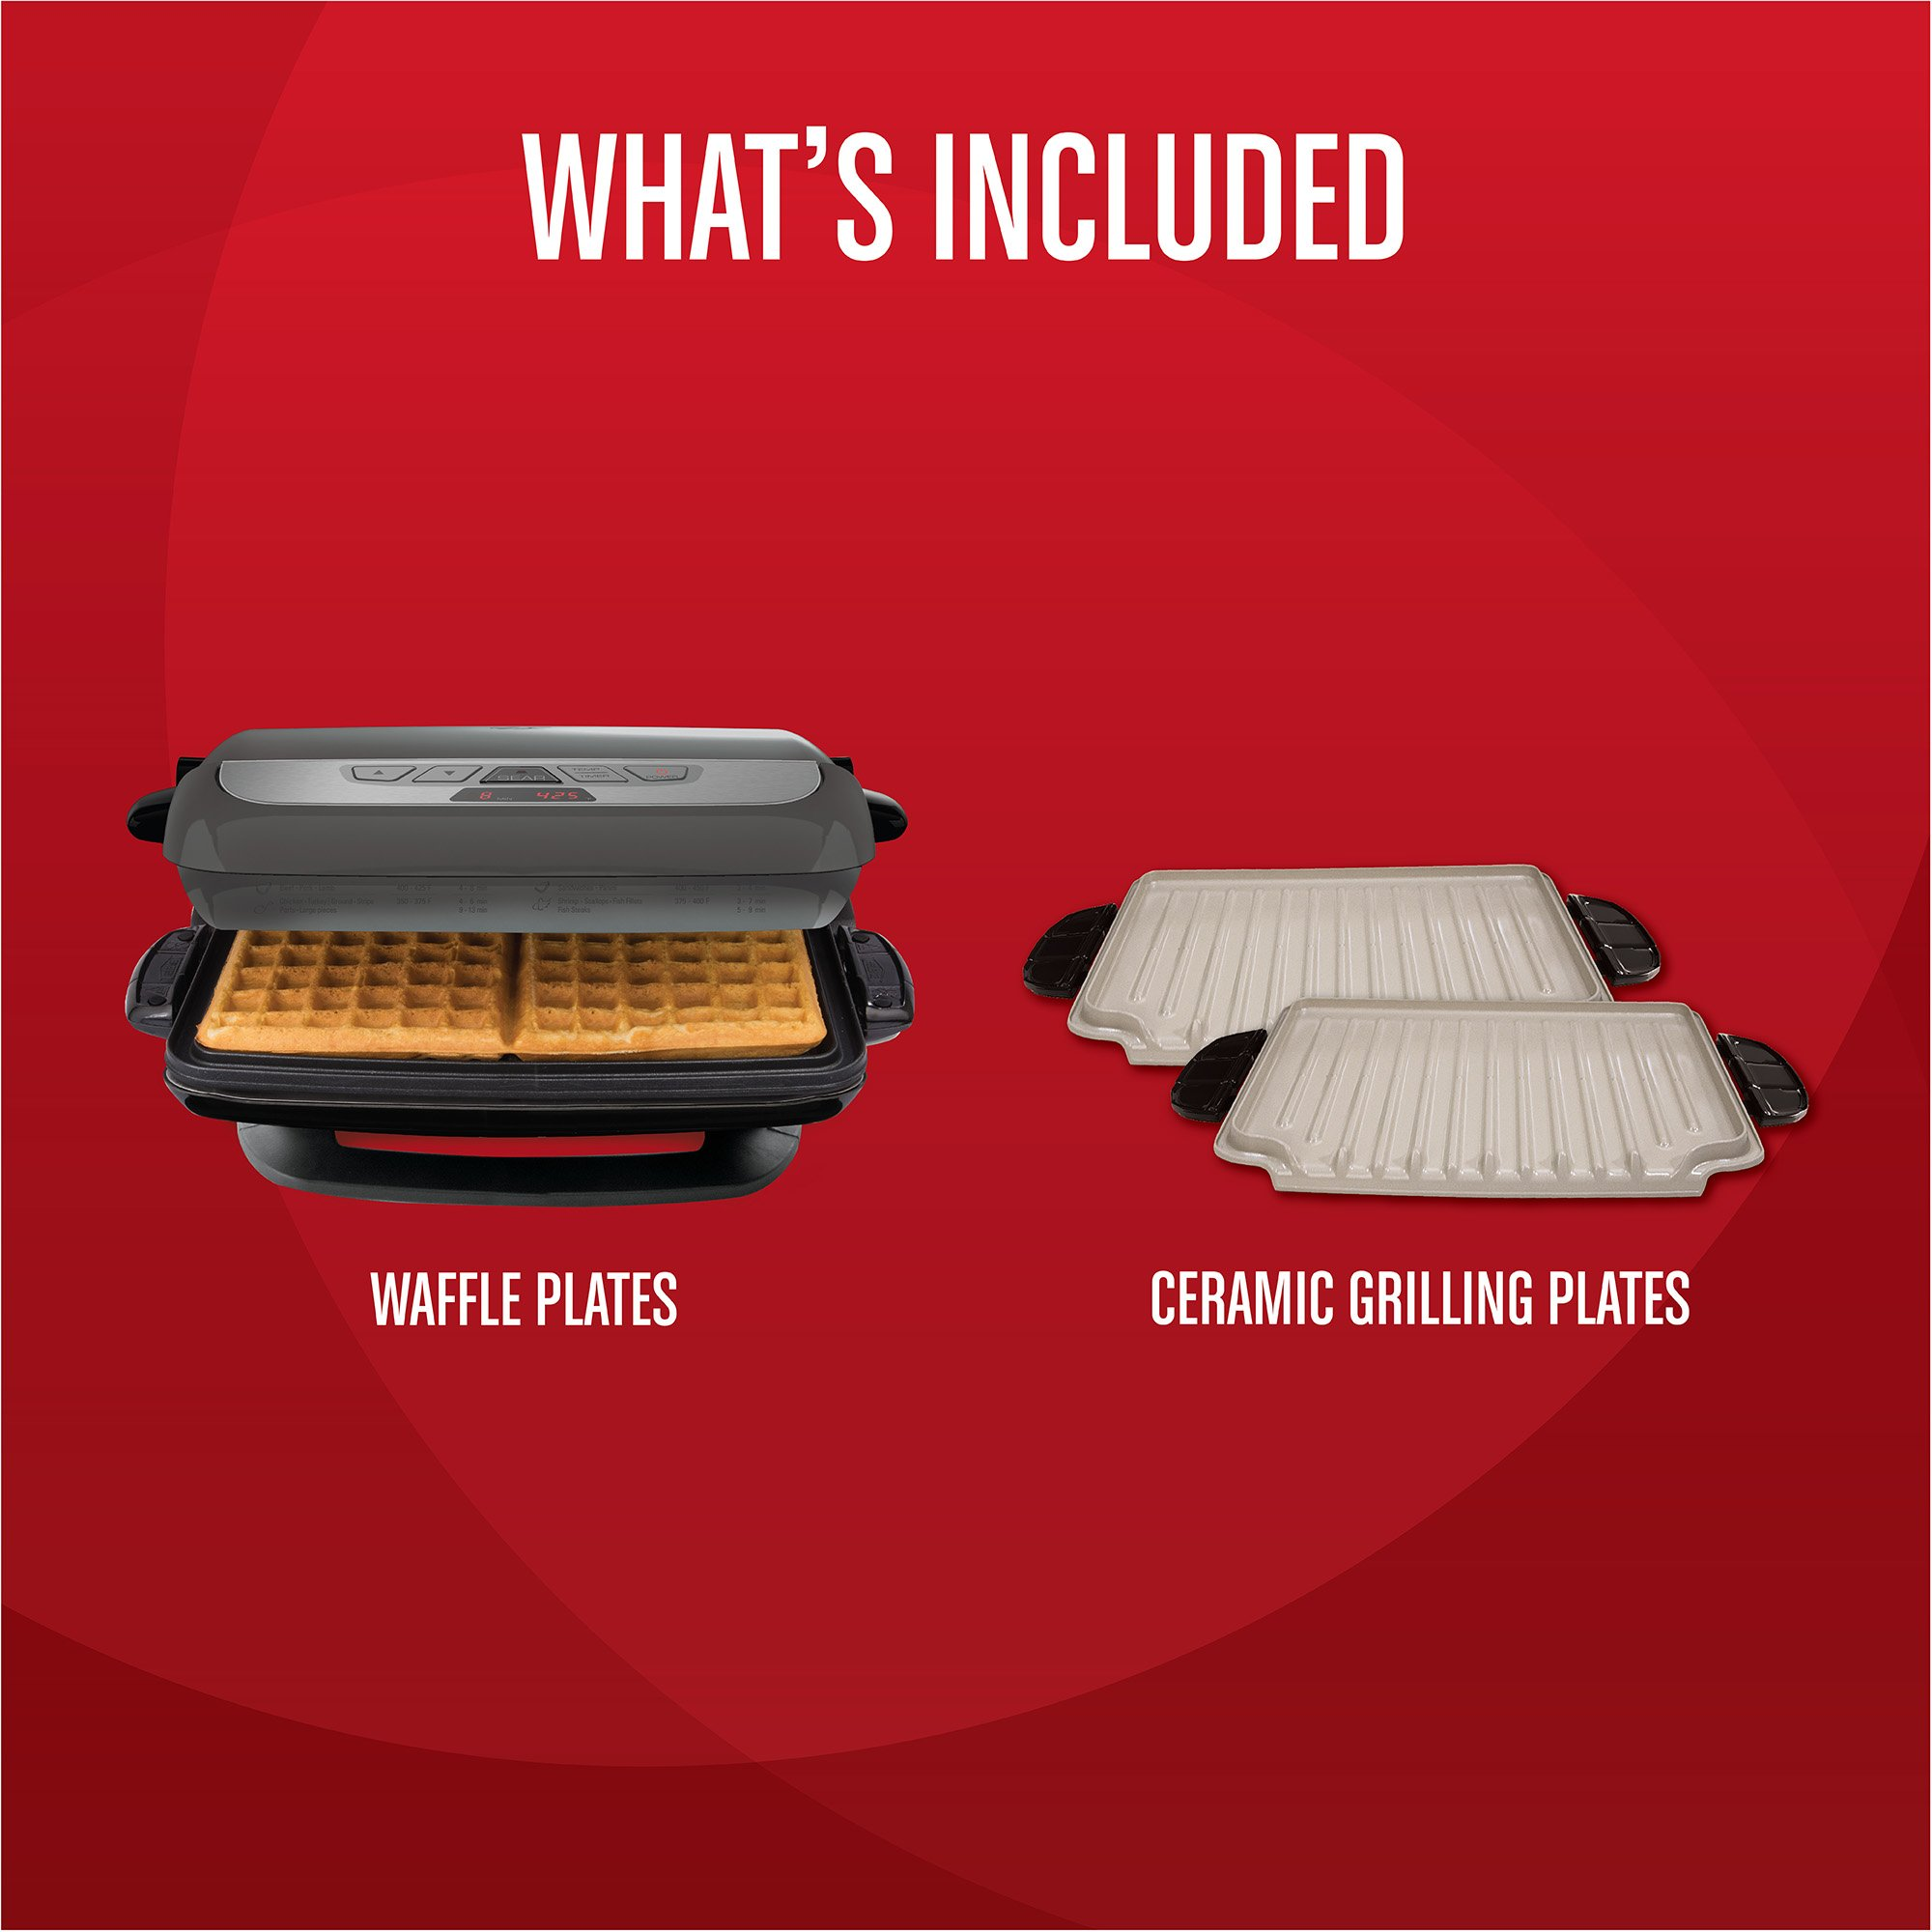 George Foreman GRP4842MB Multi-Plate Evolve Grill, (Ceramic Grilling Plates, and Waffle Plates Included), Black by George Foreman (Image #2)